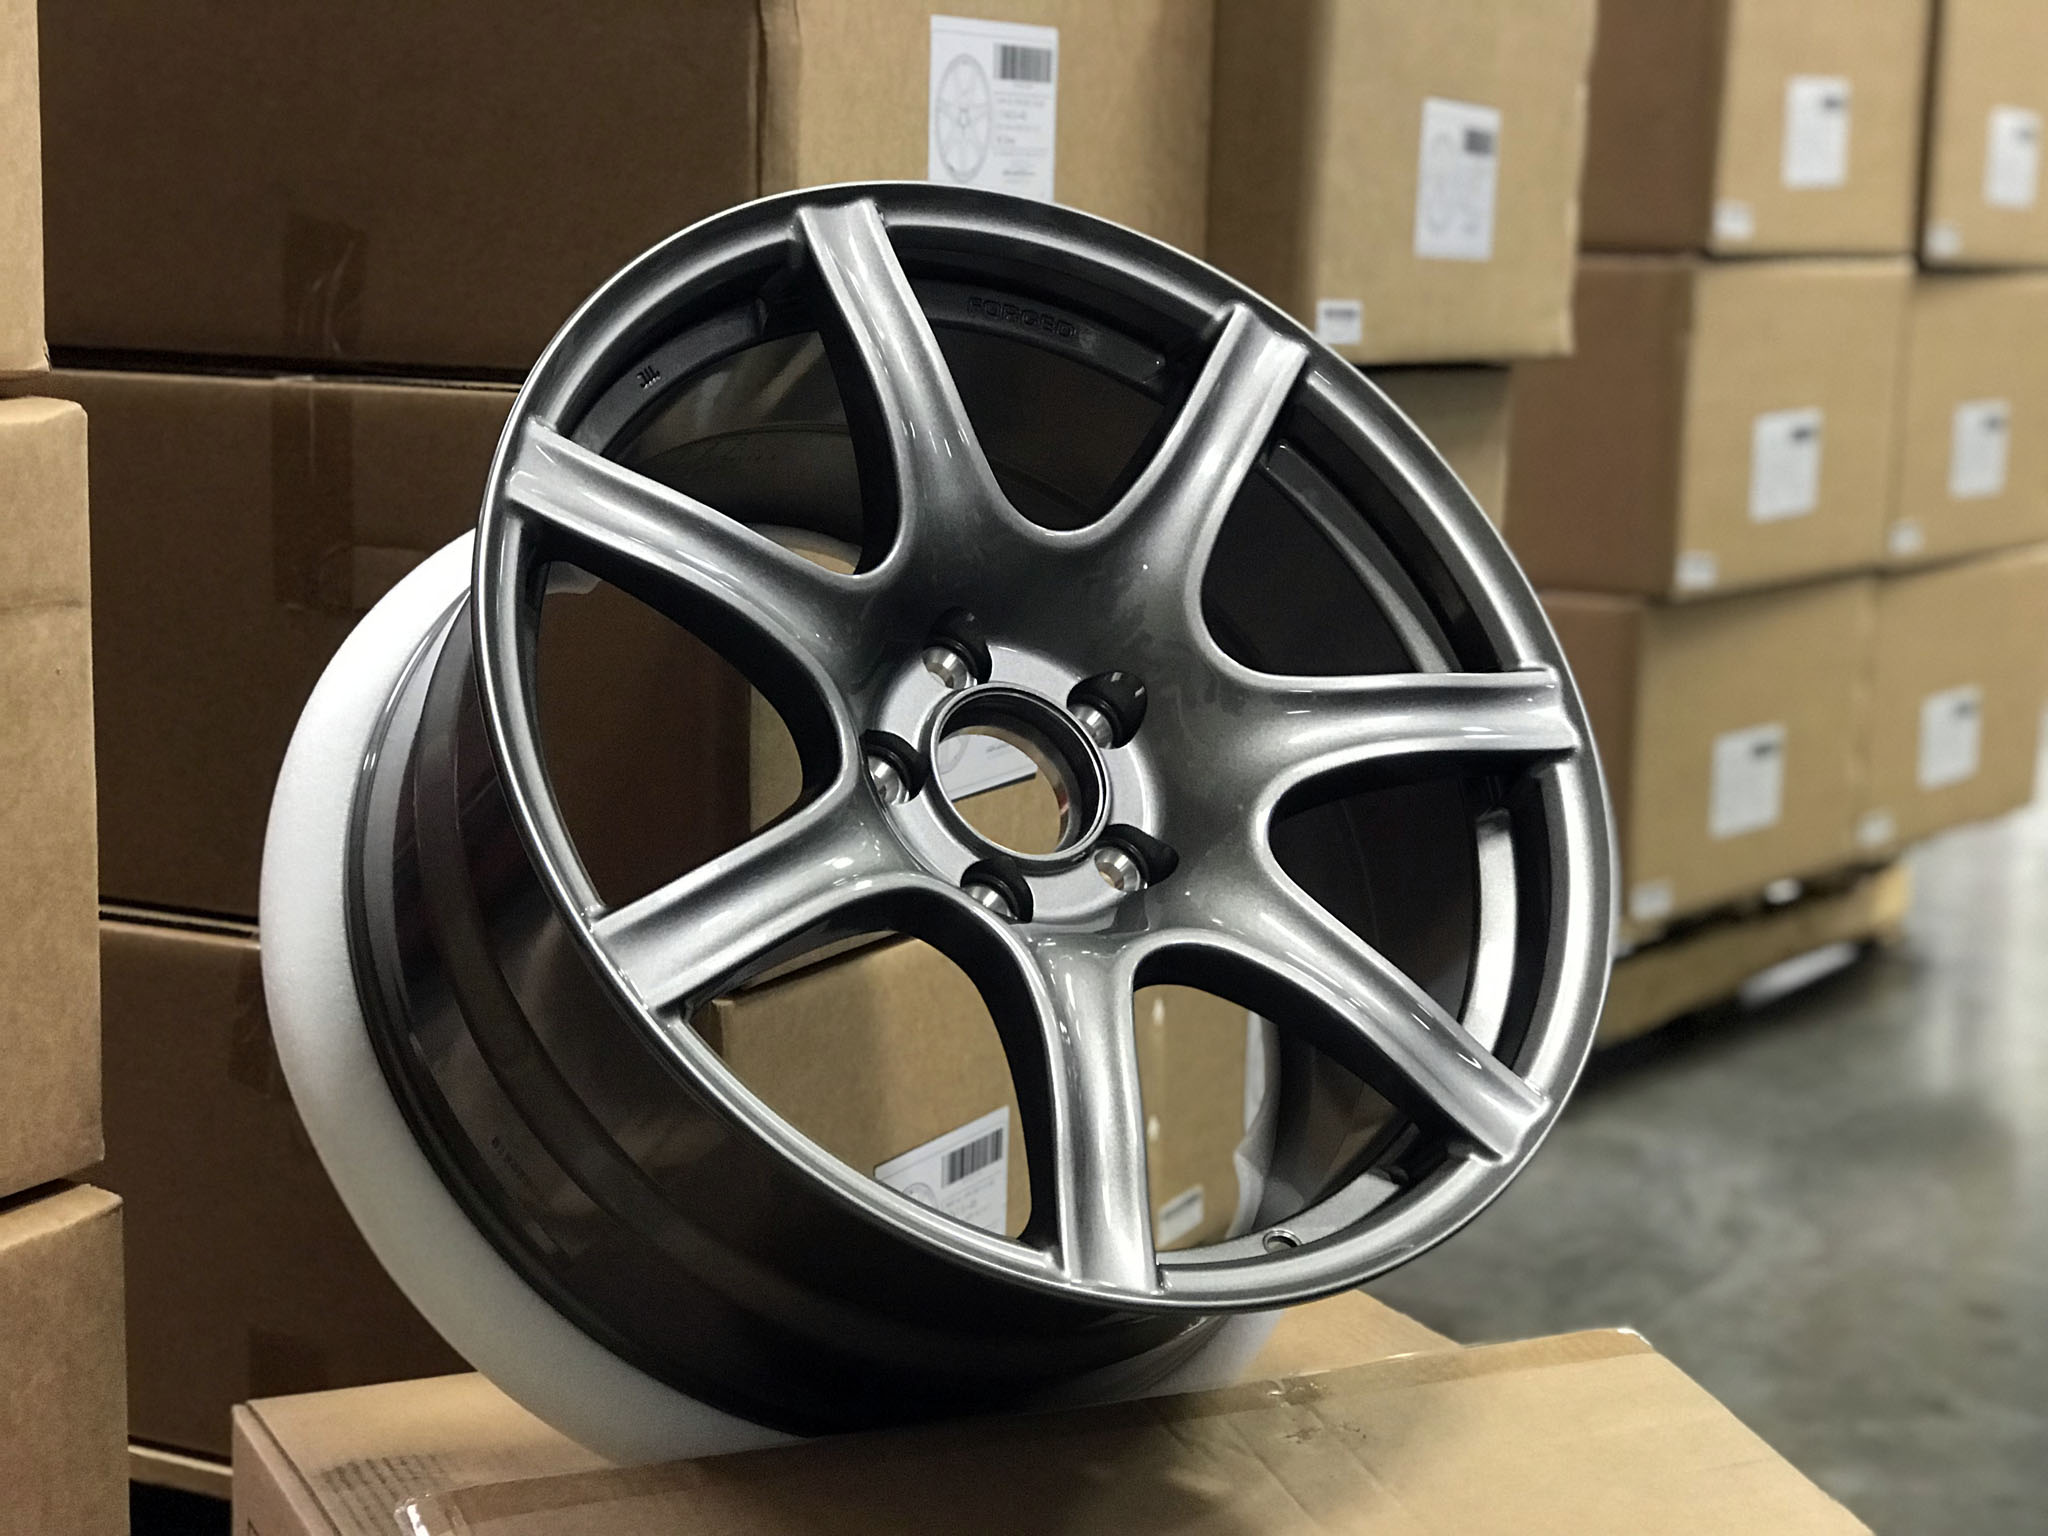 ScienceofSpeed 2002-style wheels have begun shipping!